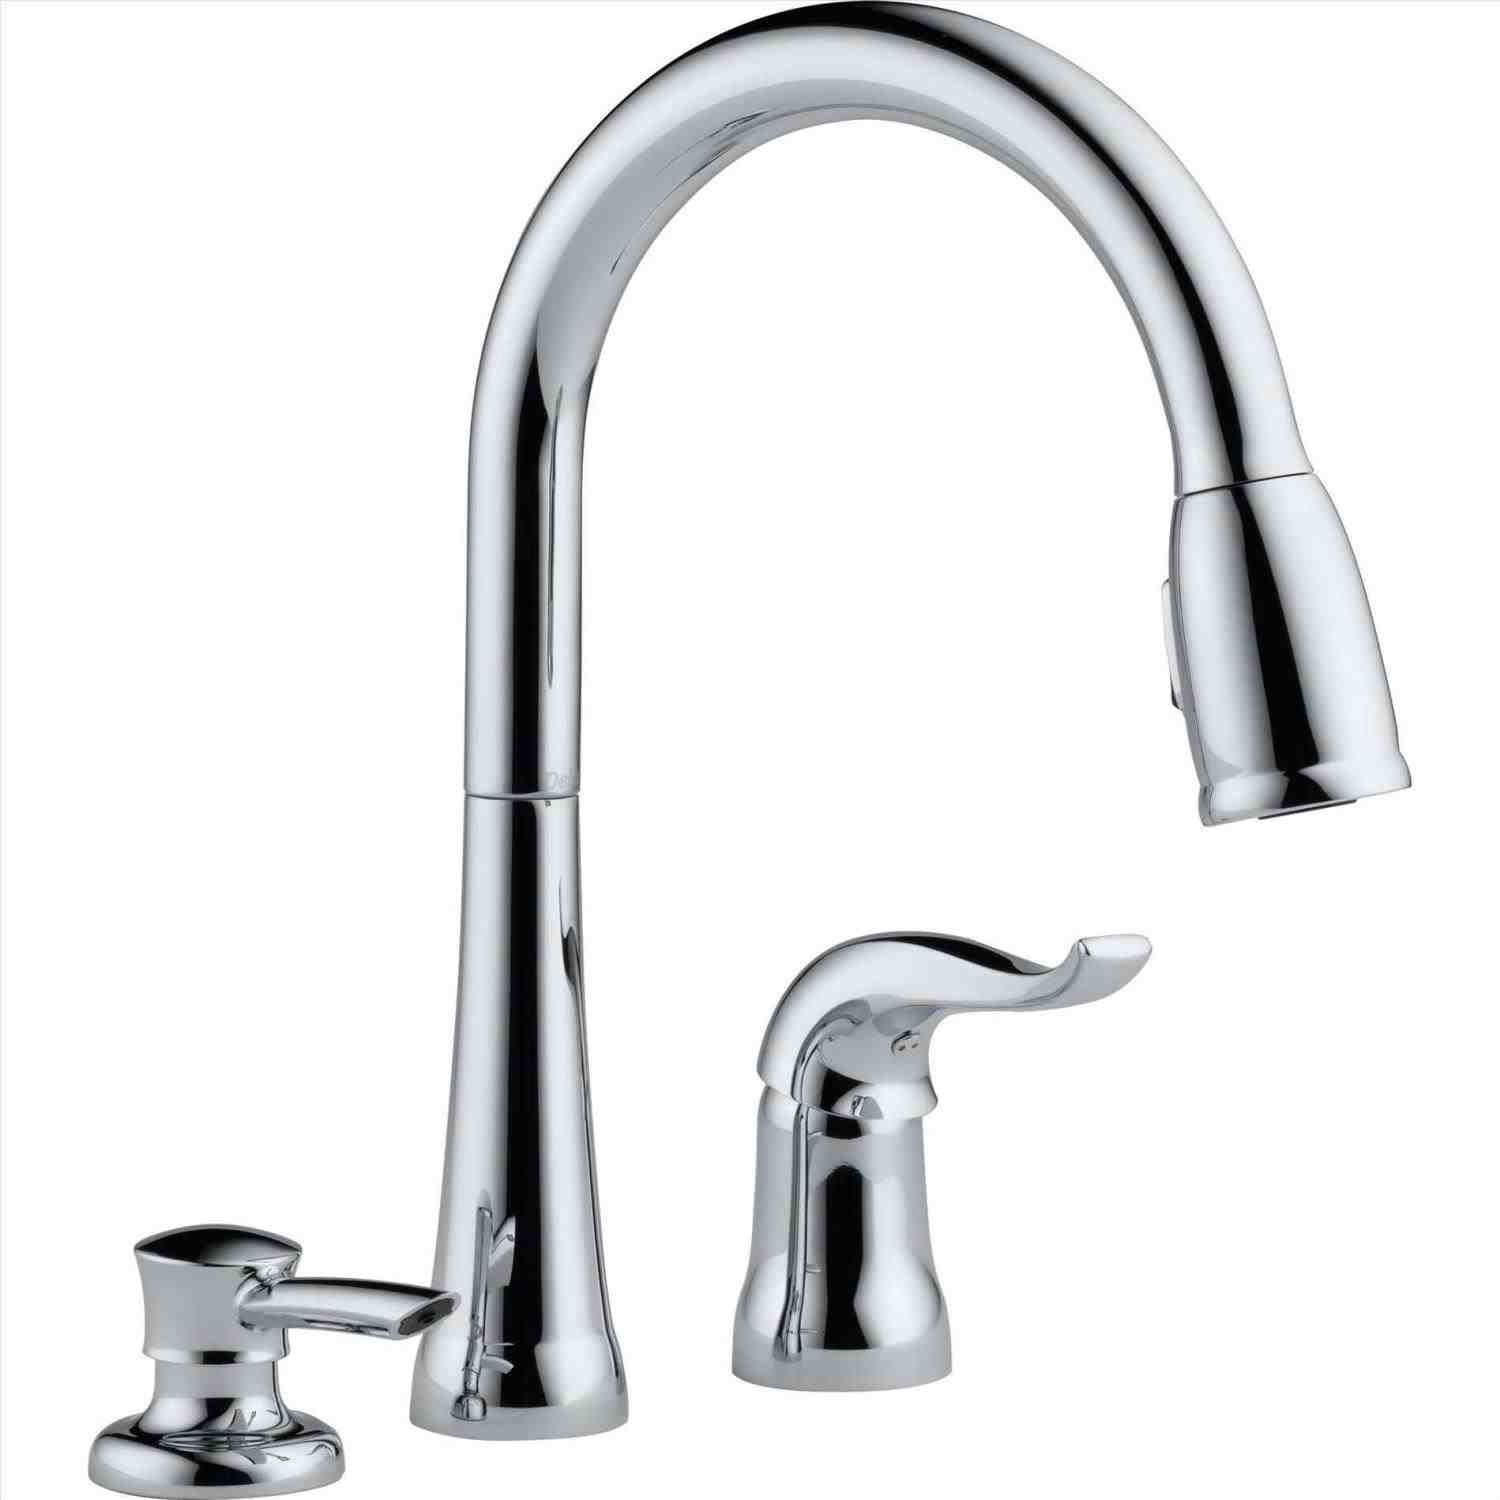 Delta Bathroom Faucet Cartridge Replacement Video Delta Faucet Cartridge Faucet Repai In 2020 Delta Faucets Bathroom Kitchen Faucet Repair Kitchen Faucet With Sprayer